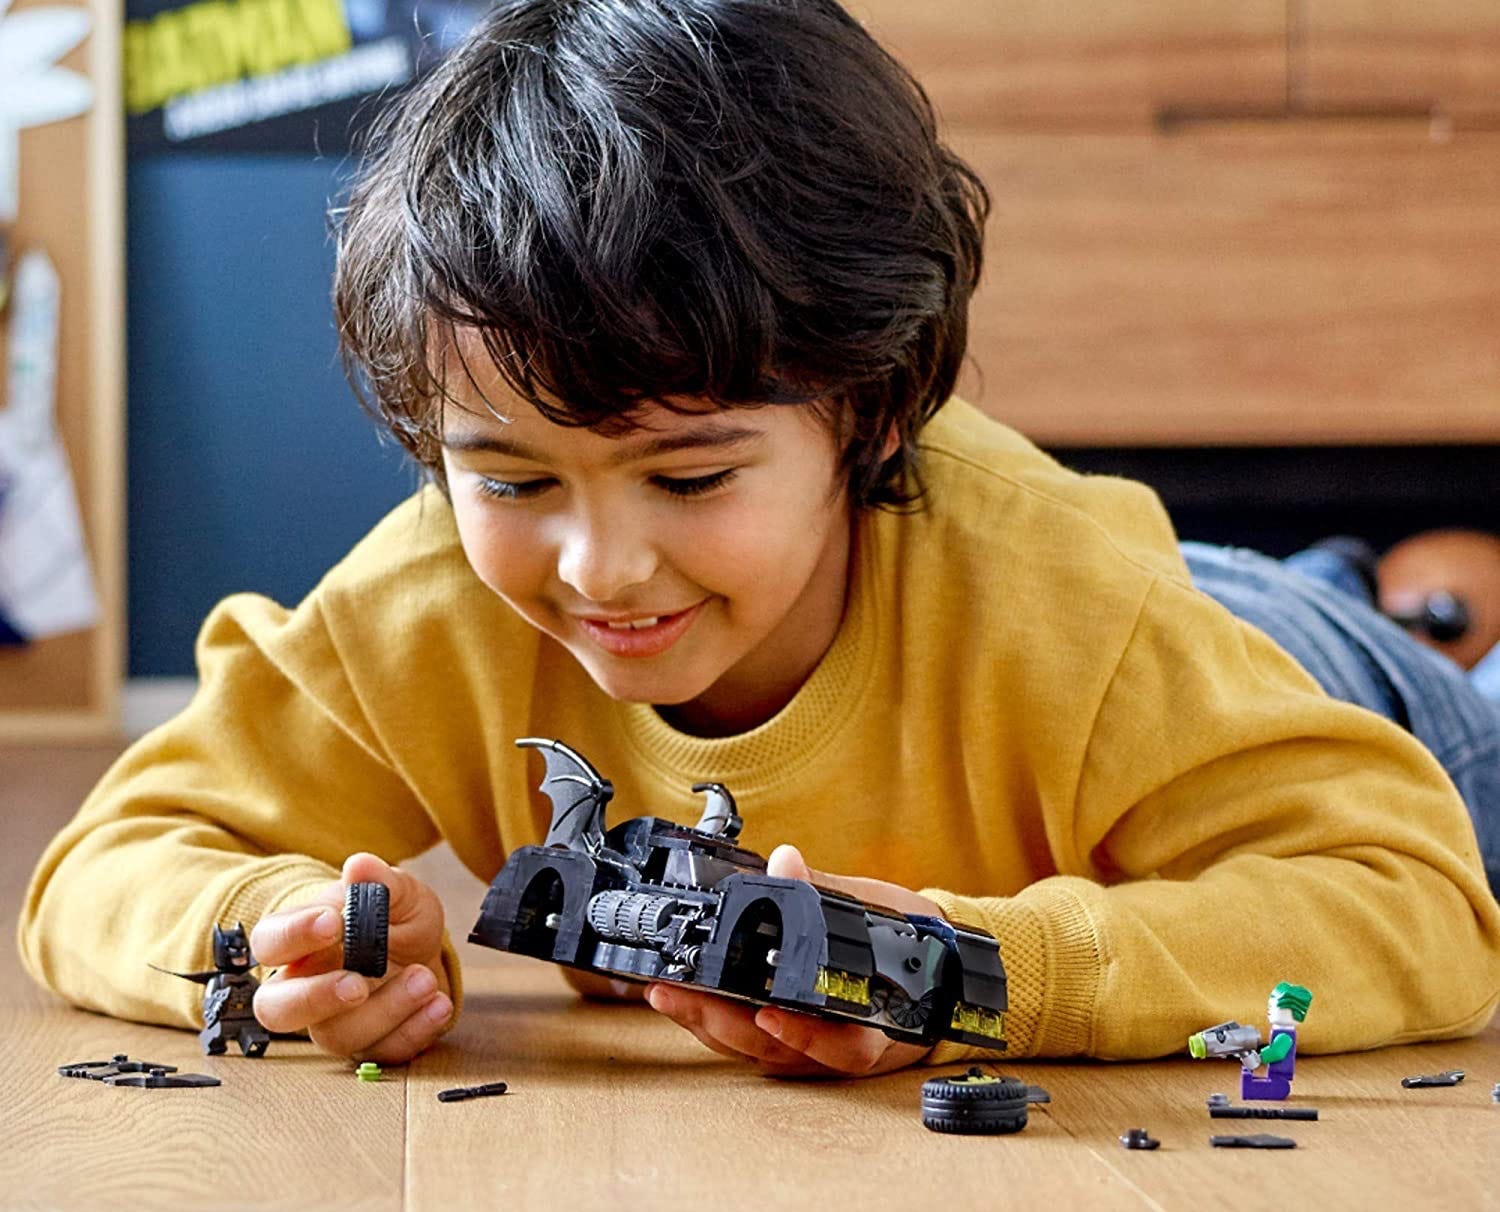 A young boy playing with a batmobile LEGO set.